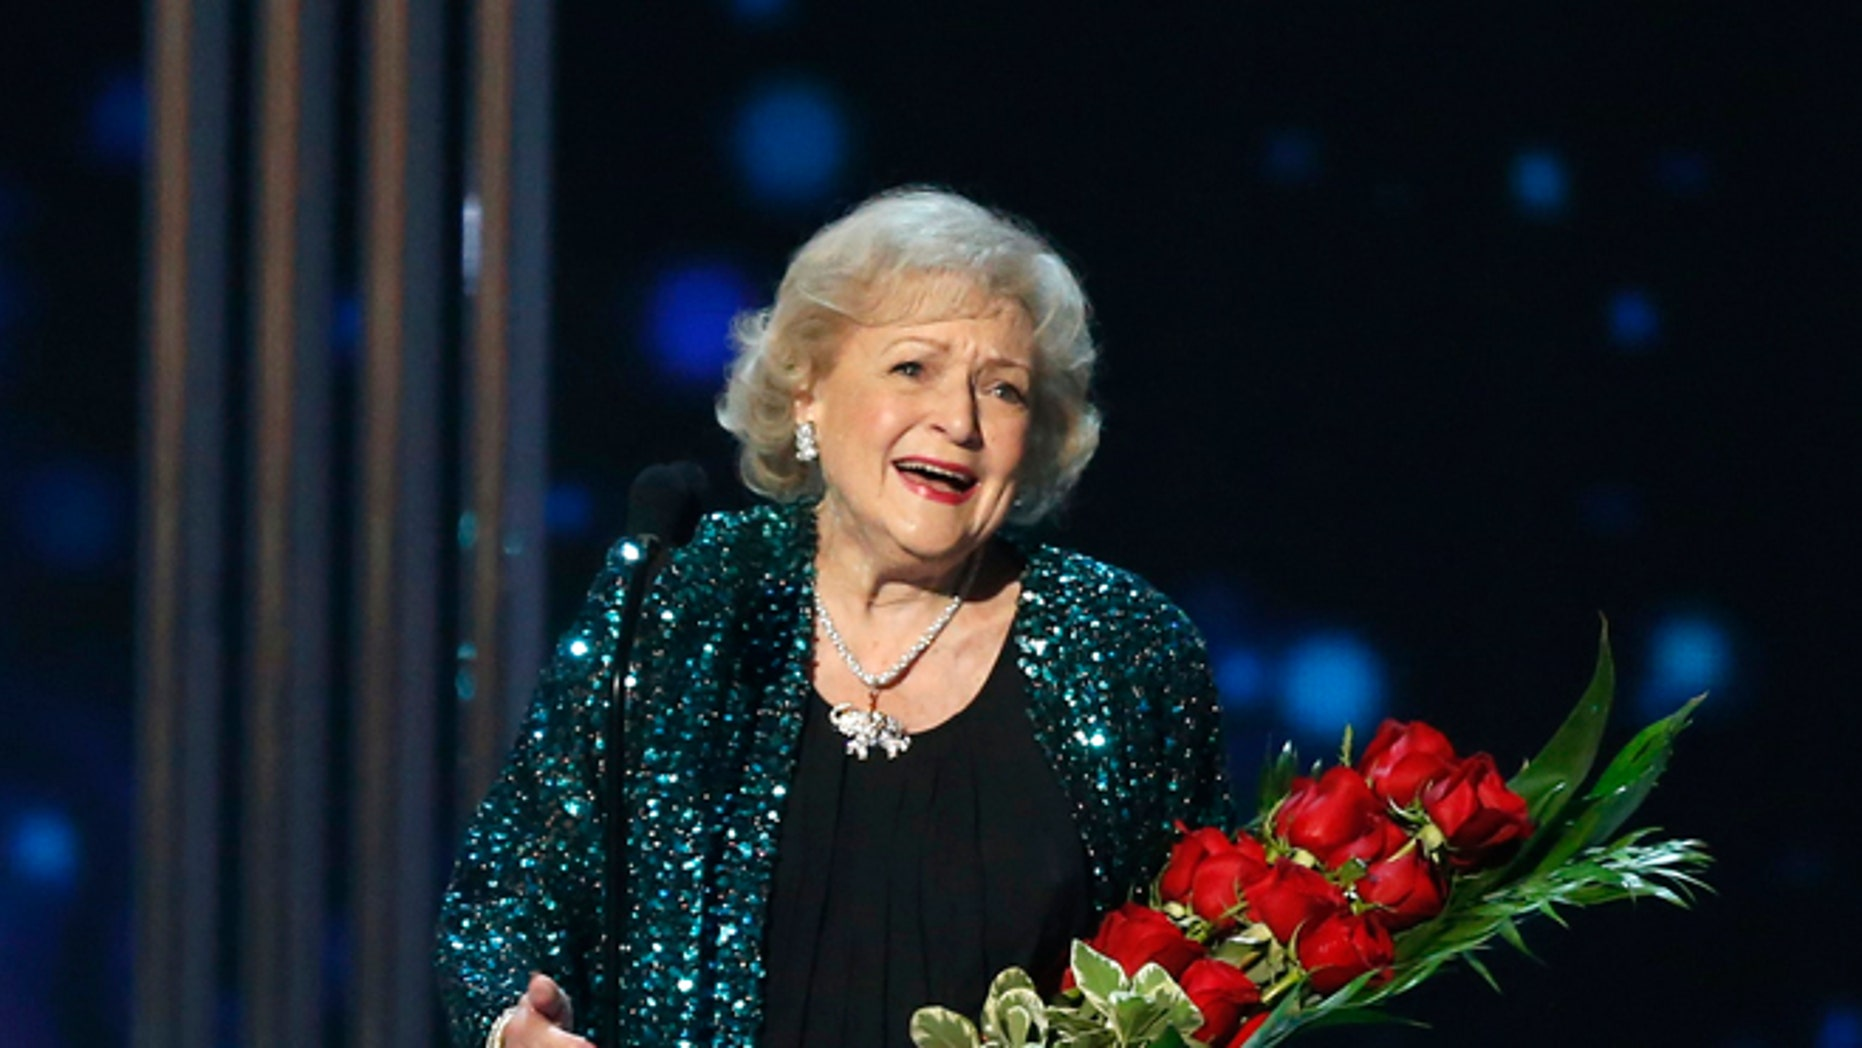 January 7, 2015. Actress Betty White accepts the favorite TV Icon award during the 2015 People's Choice Awards in Los Angeles, California.